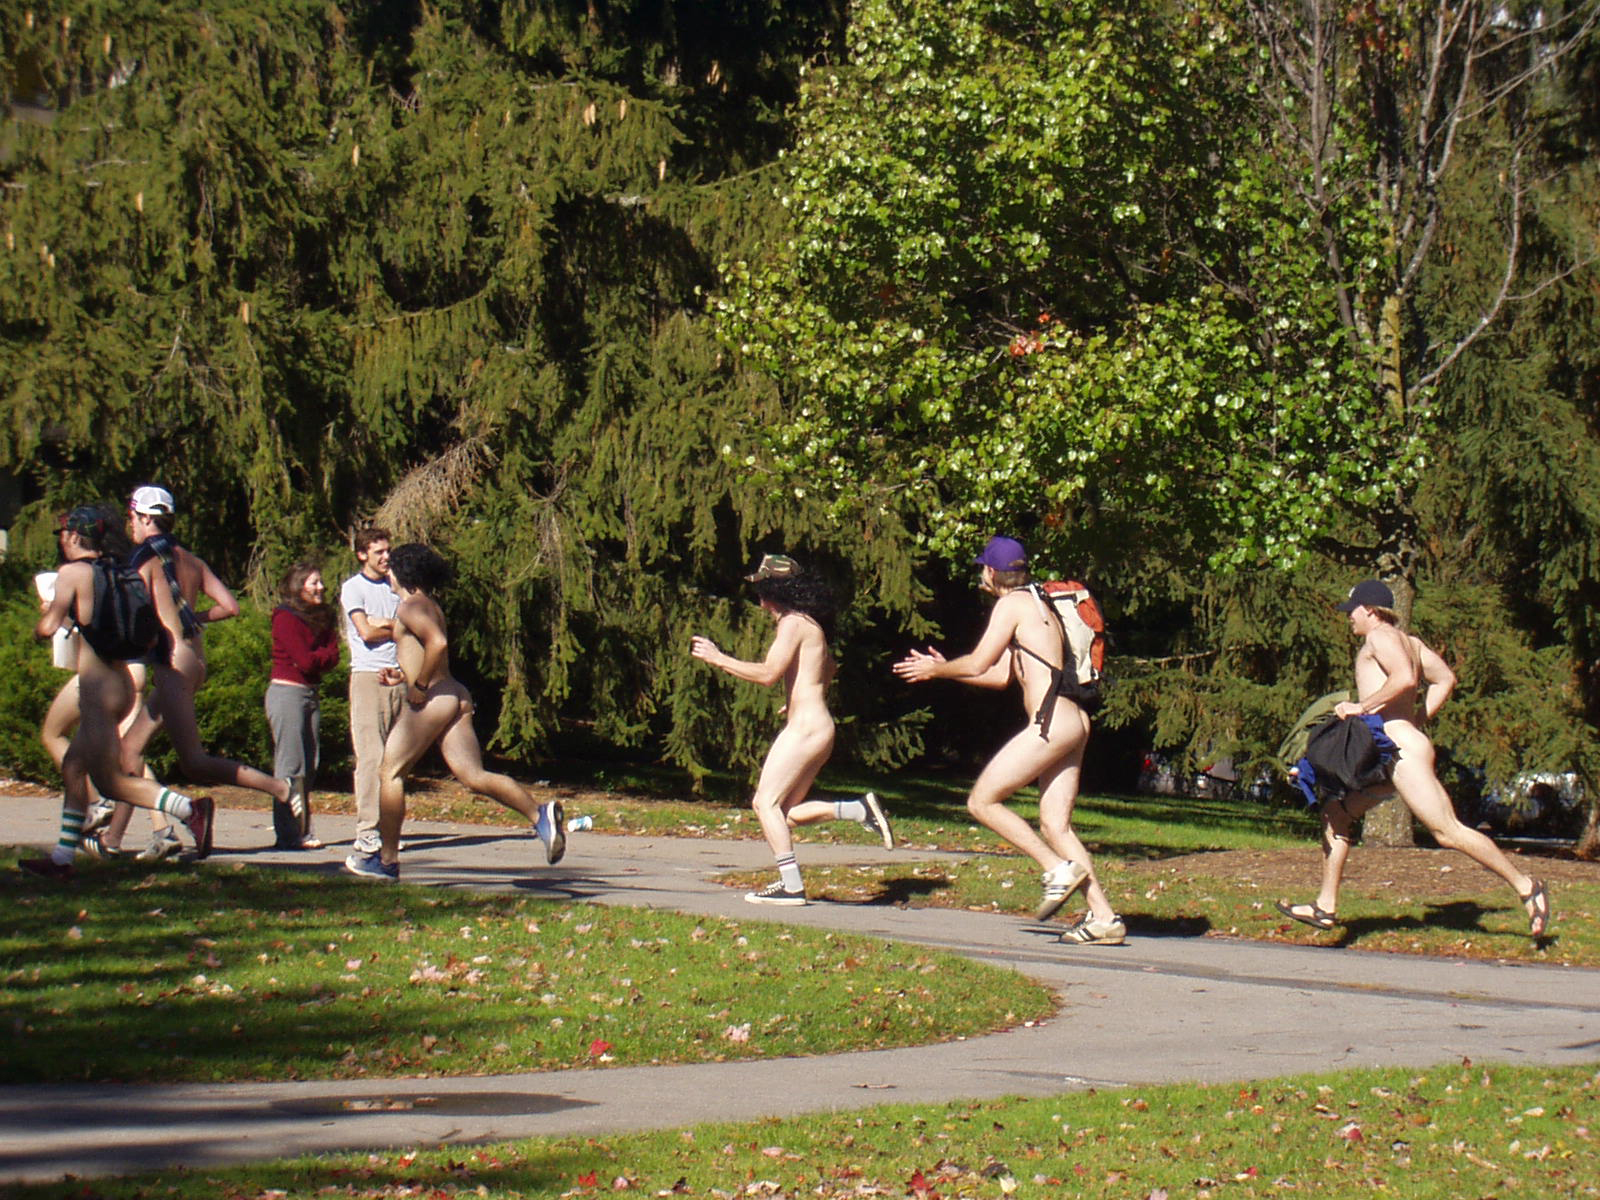 Pity, that Tufts student harvard naked mile runners